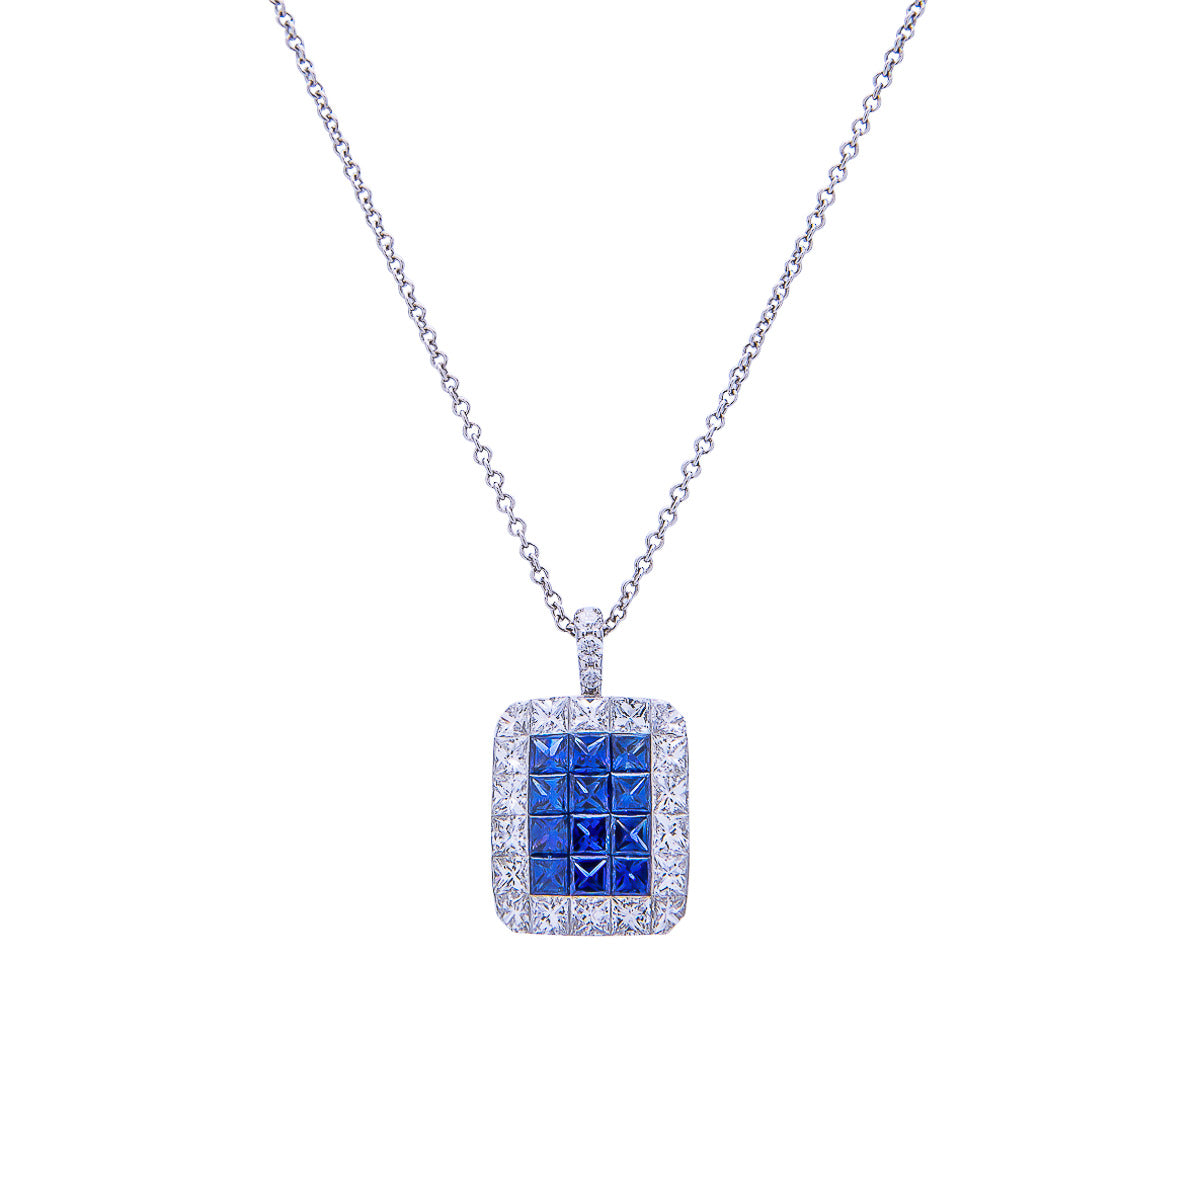 Sabel Collection 18K White Gold Princess Cut Sapphires with Diamond Halo Pendant Necklace